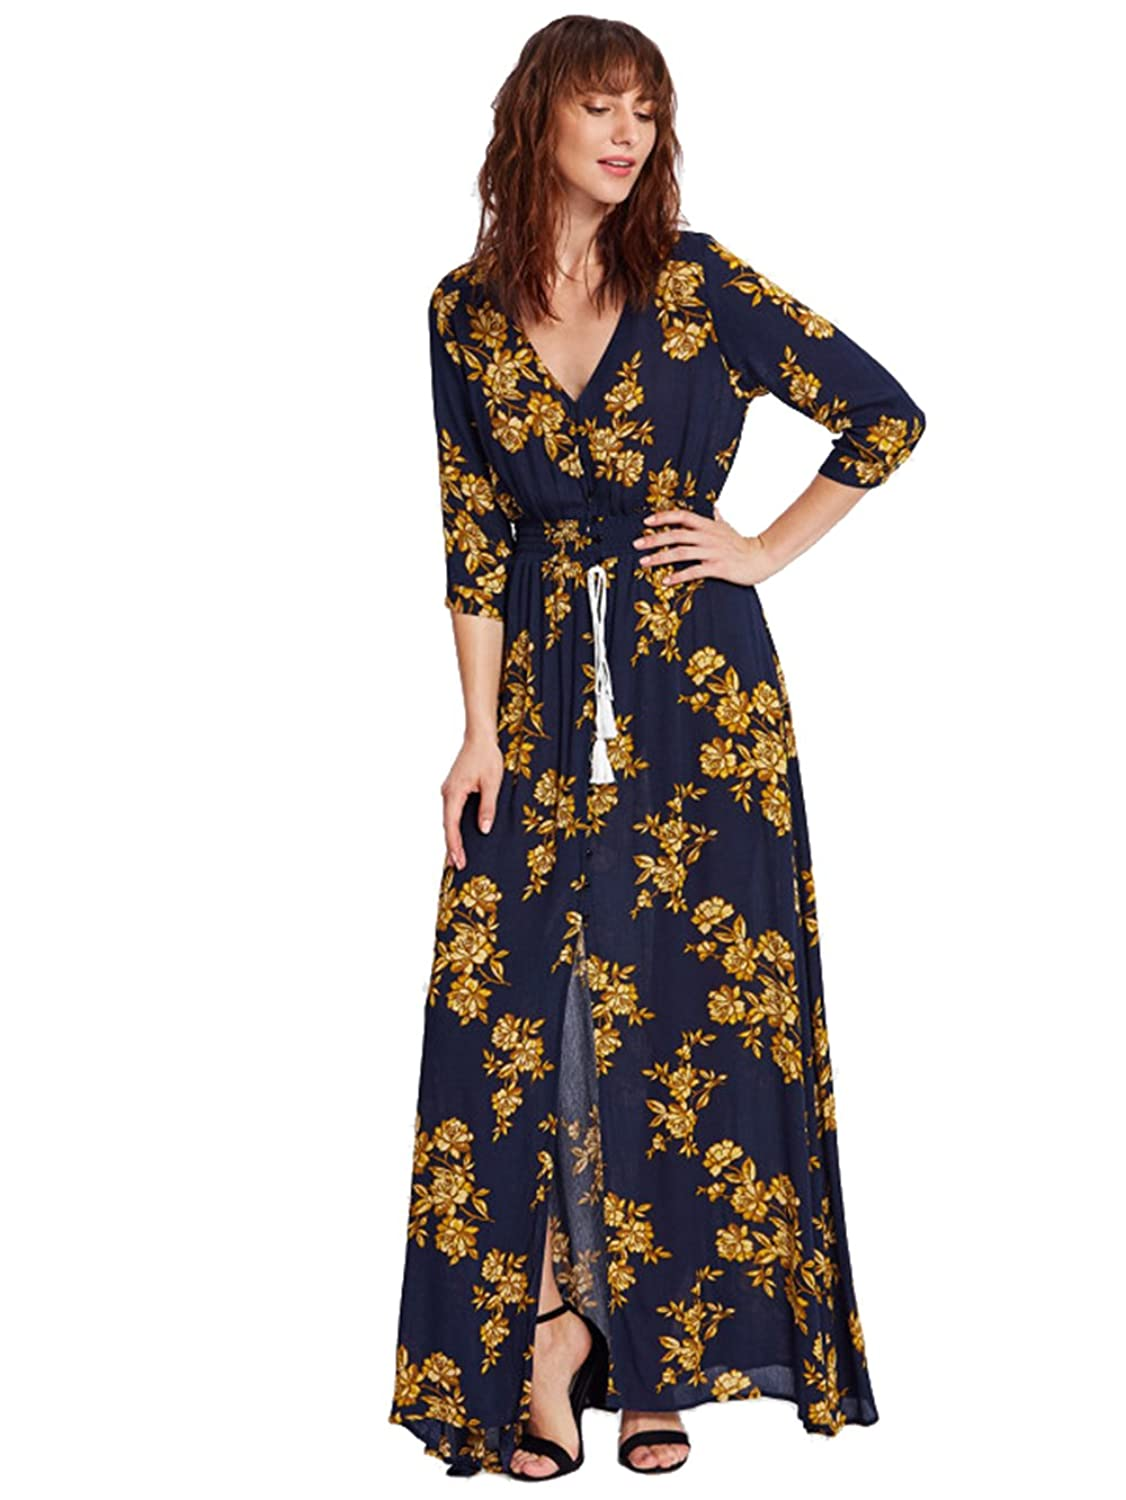 Milumia Women's Button Up Split Floral Print Flowy Party Maxi Dress